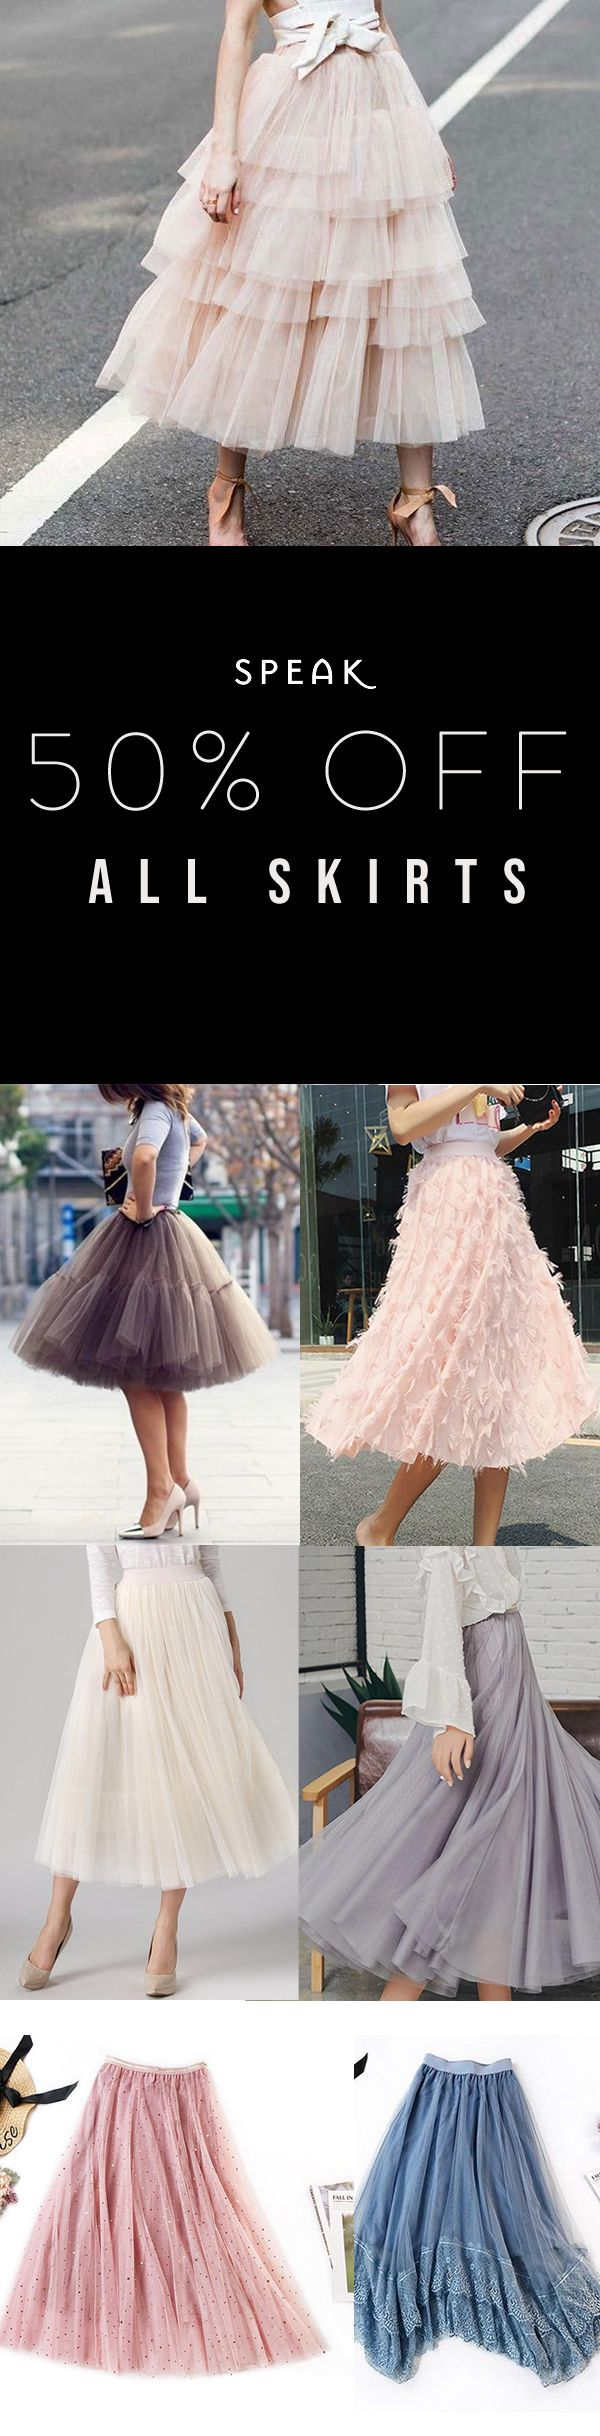 Tulle Skirt Sale! 50% Off (or more) all skirts at Speak. #kleidersale